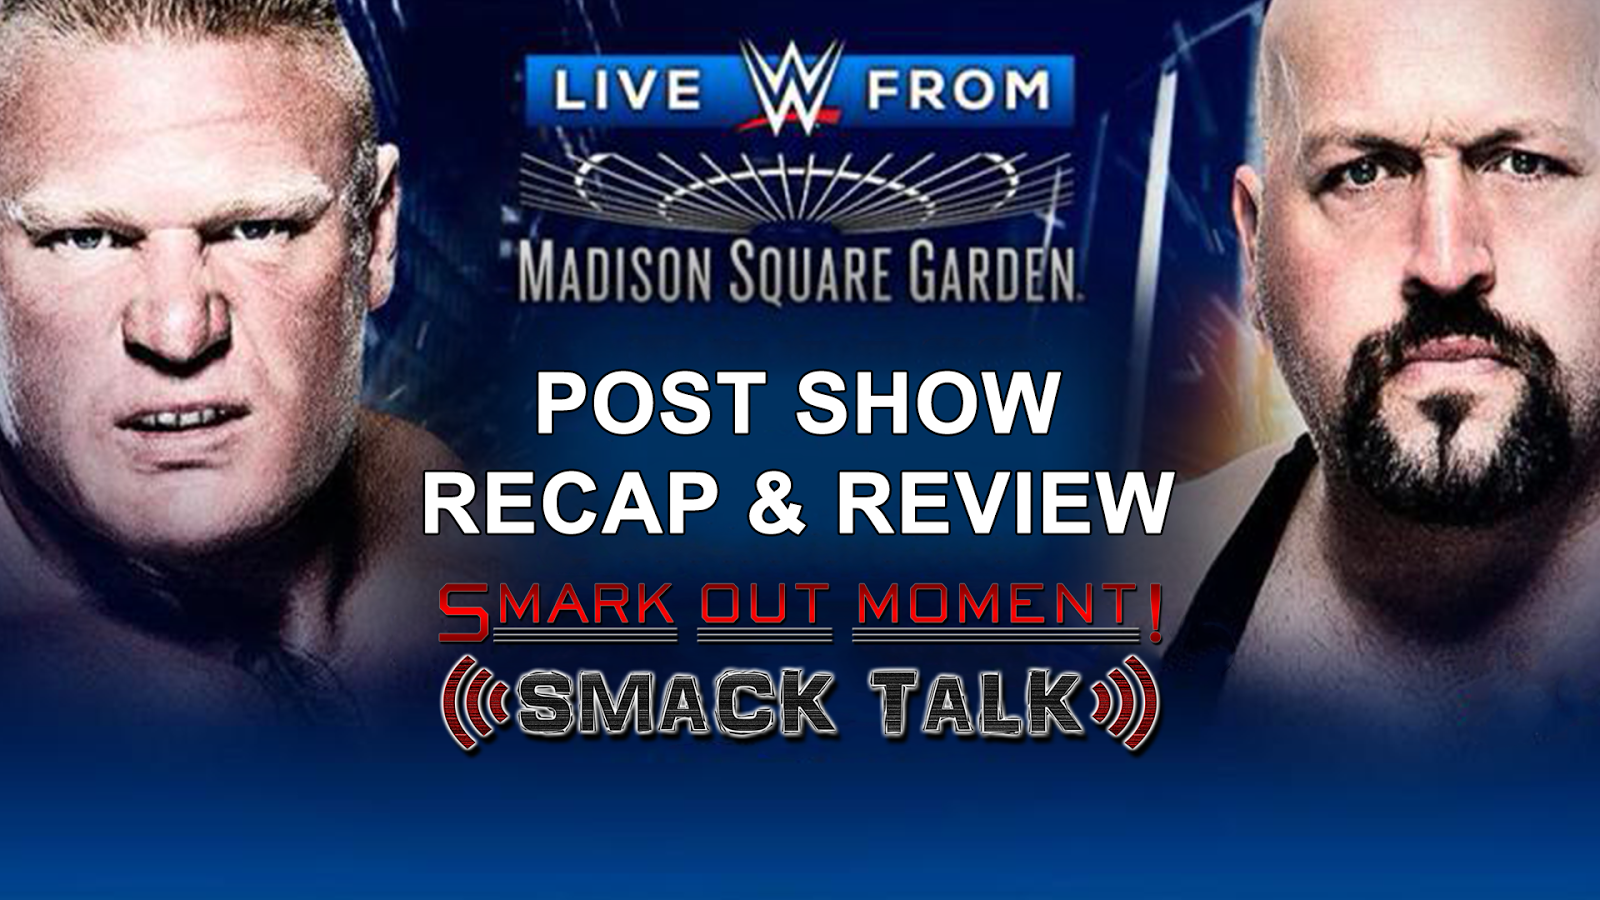 Wwe Live From Madison Square Garden Post Show Recap Review Smark Out Moment